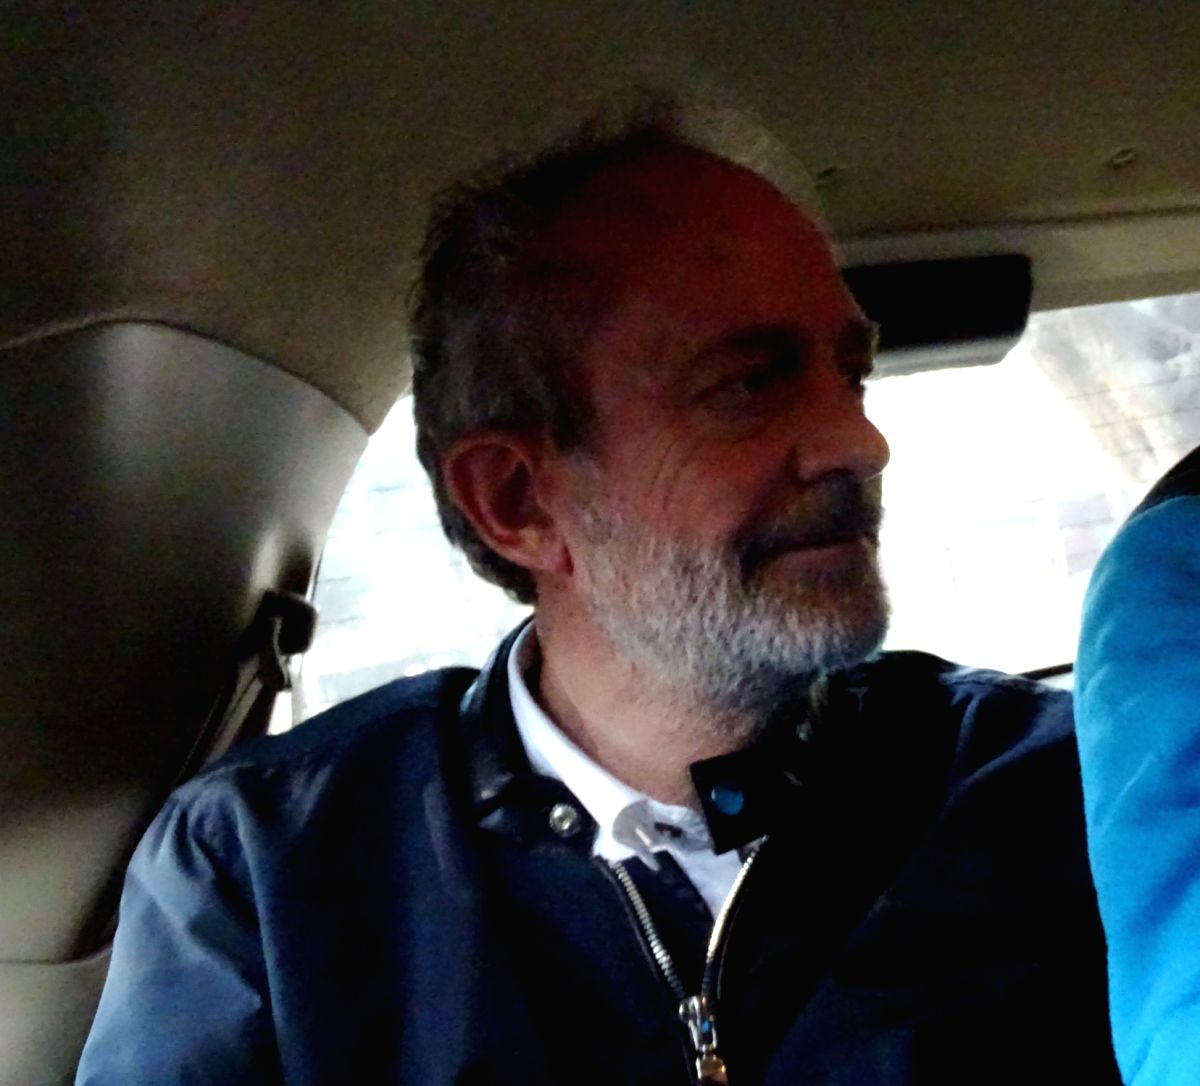 British national Christian Michel, the middleman accused in the Rs 3,600-crore AgustaWestland VVIP chopper deal case, on Friday moved his bail plea in a Delhi court.